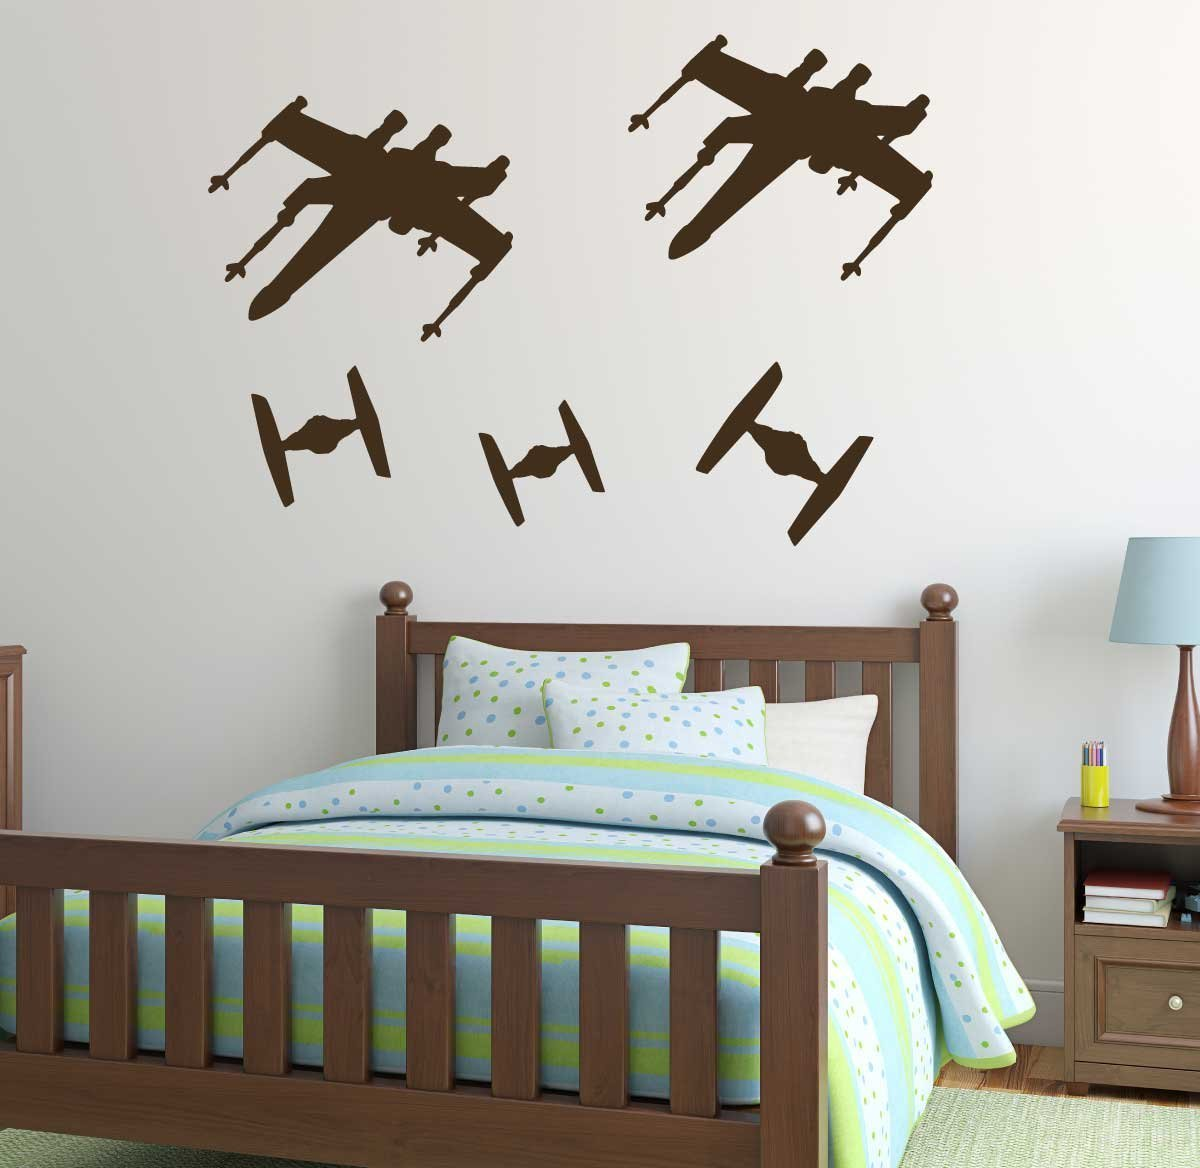 Star Wars Wall Decals - TIE Fighters Versus X-Wing Starfighter Spaceship Stickers - Space Battle Vinyl Decor for Boy's Bedroom, Playroom, Nursery, School Classroom, Library